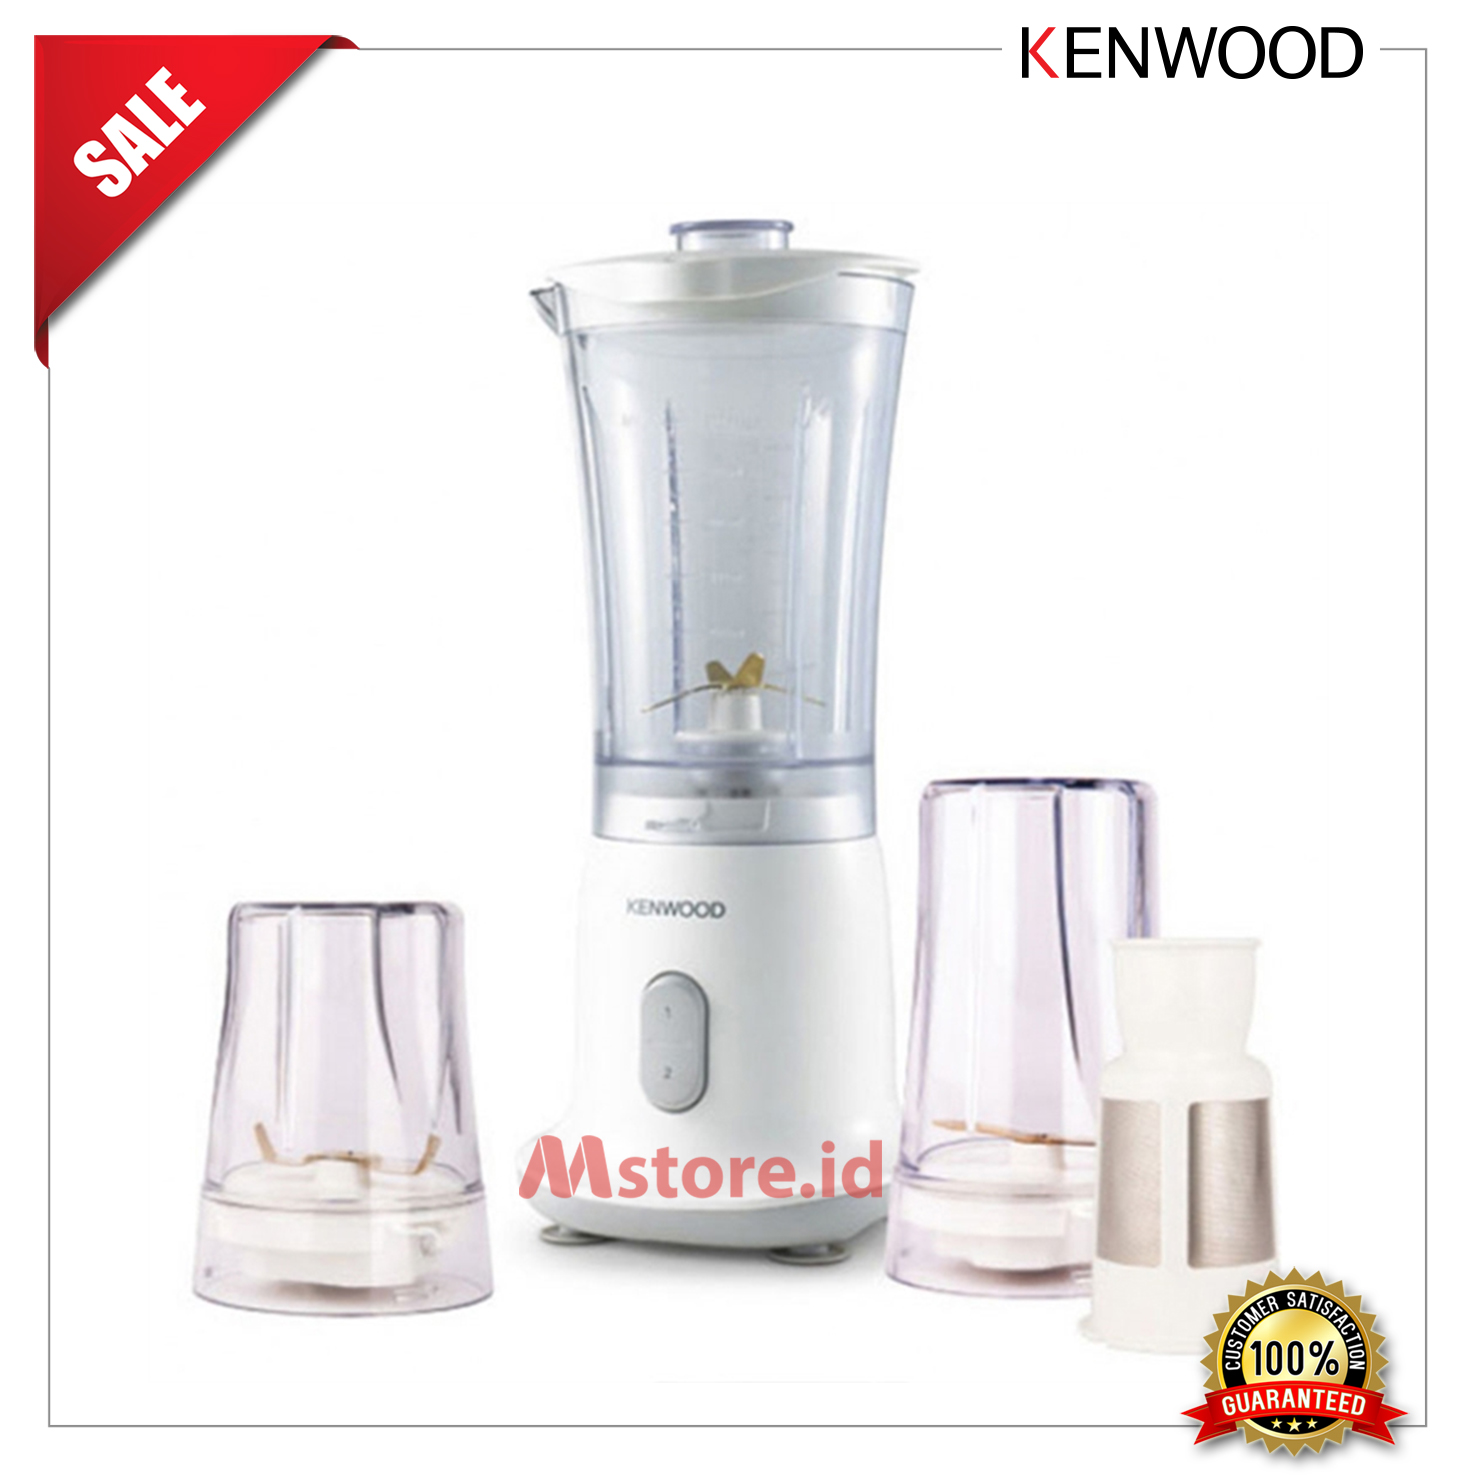 KENWOOD BLP 011 WH BL KW_M-store